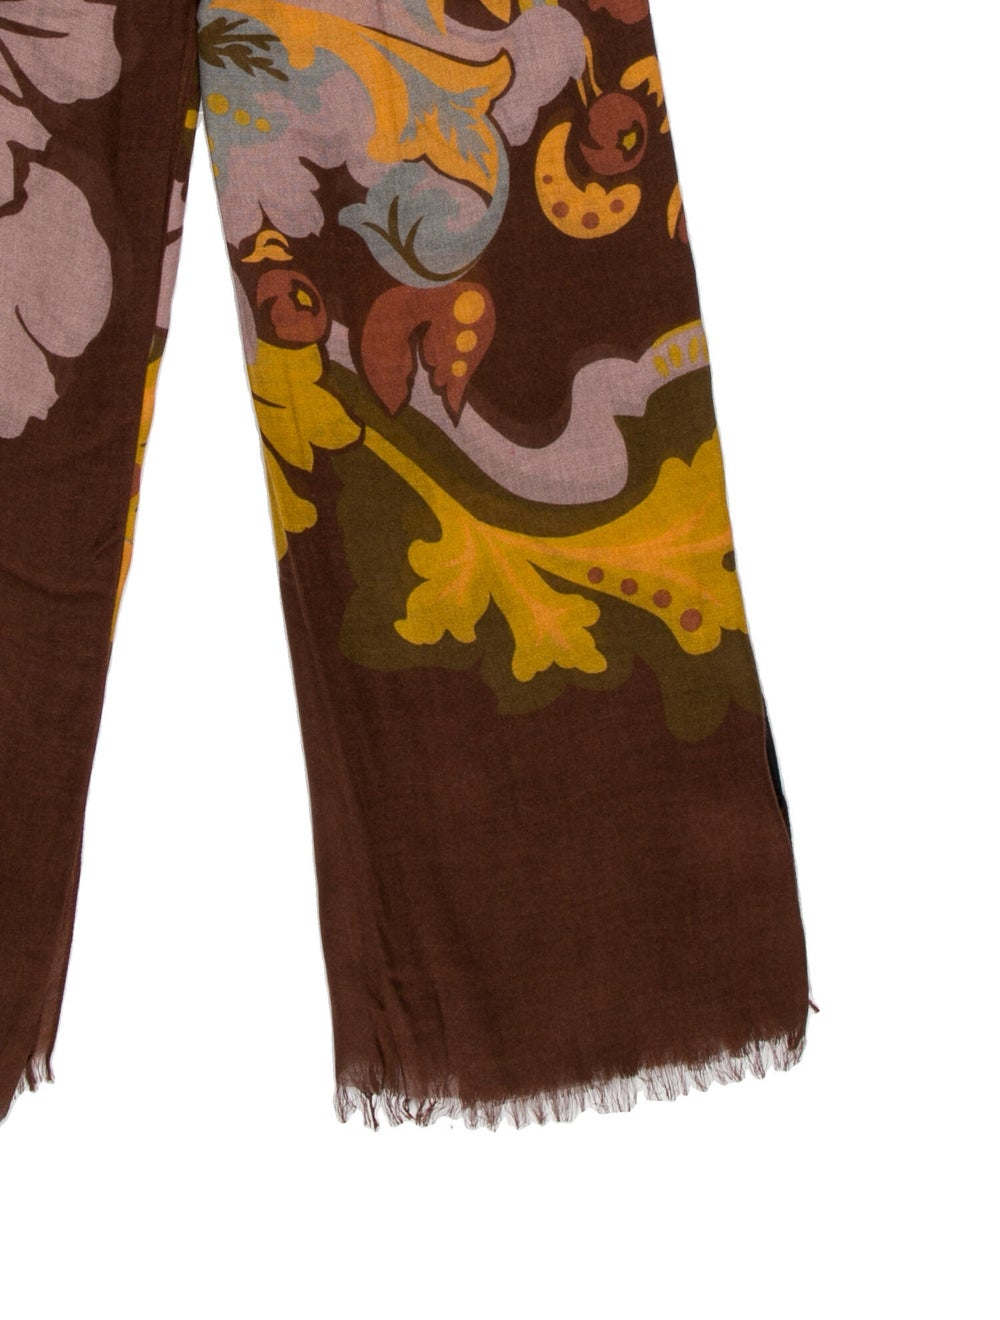 Gucci Floral 2015 Scarf w/ Tags Brown - image 2